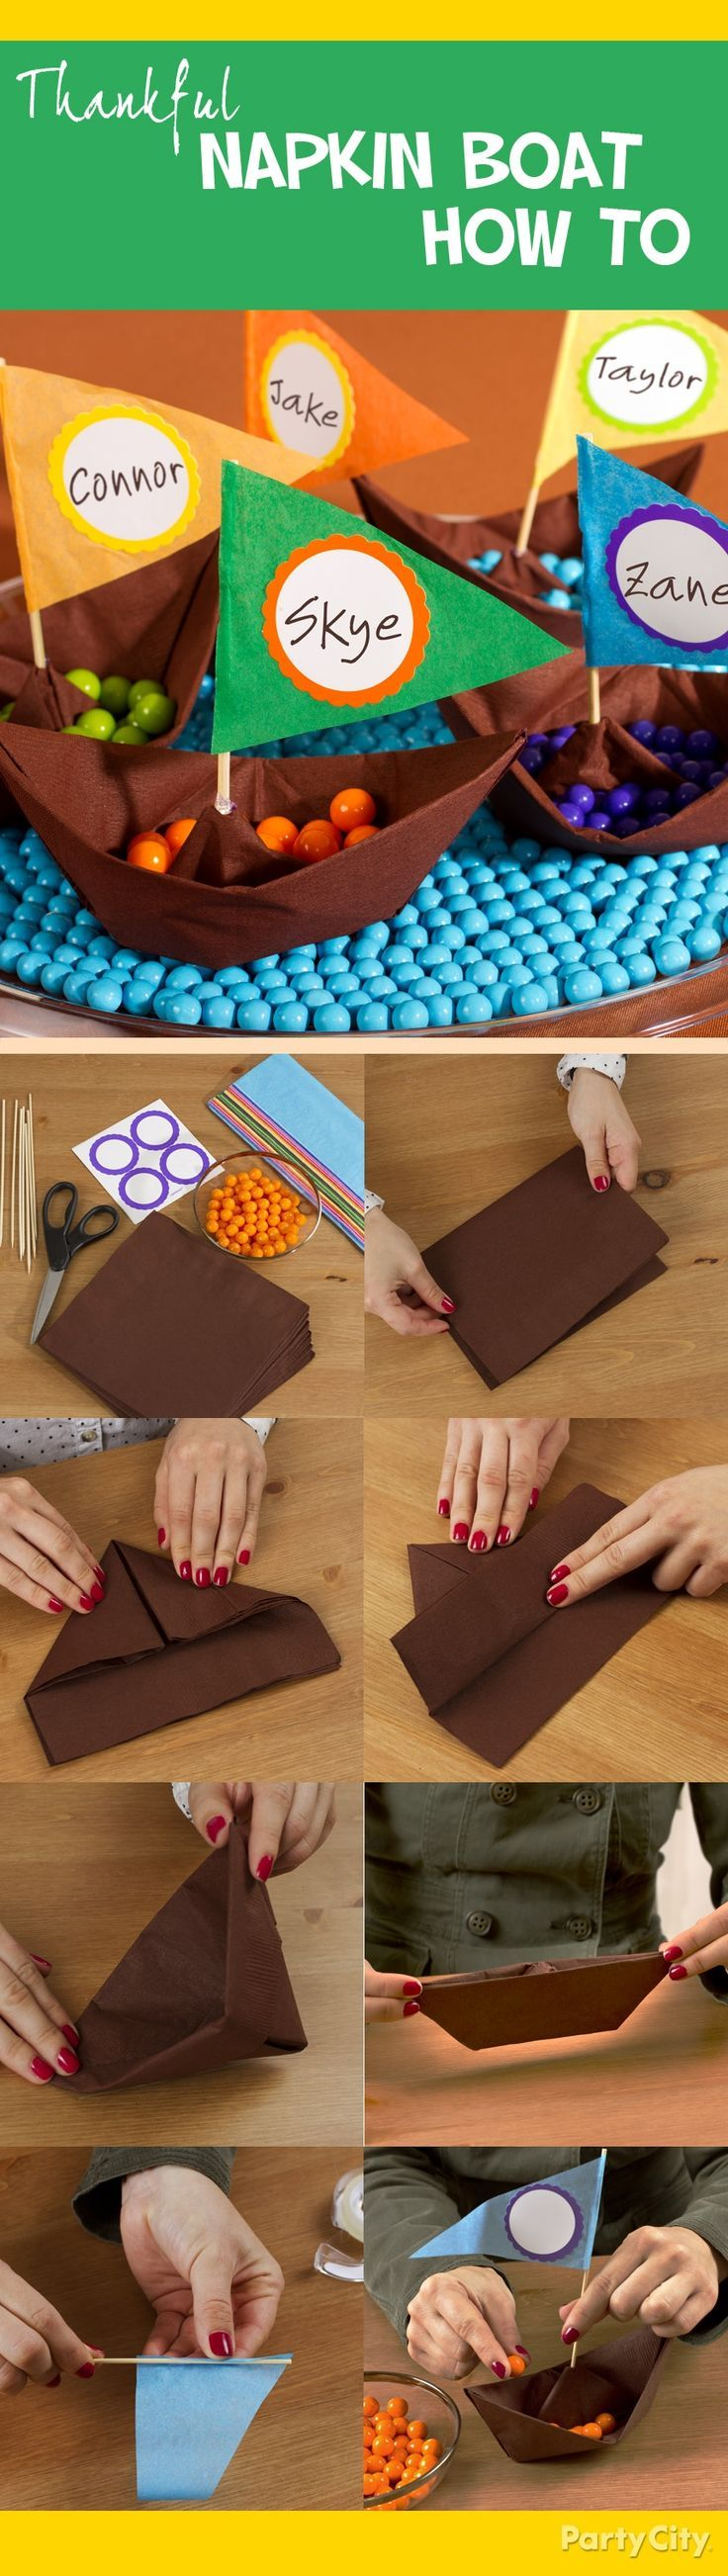 Make napkin paper boats with this step-by-step napkin folding tutorial! Perfect as mini Mayflowers for your Thanksgiving party.